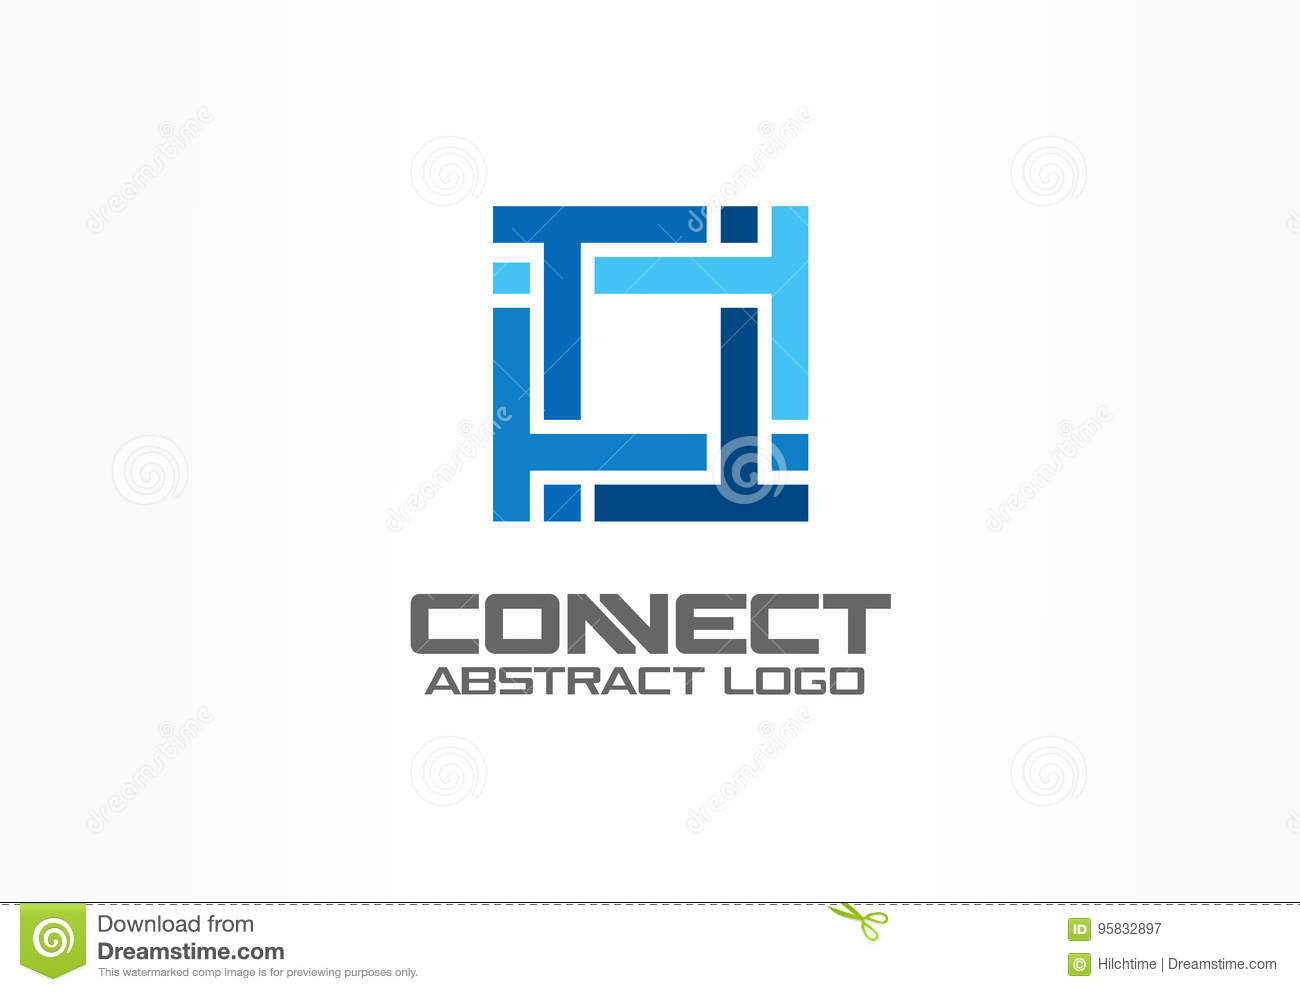 Abstract logo for business company. Industry, finance, bank logotype idea. Square group, network integrate, technology